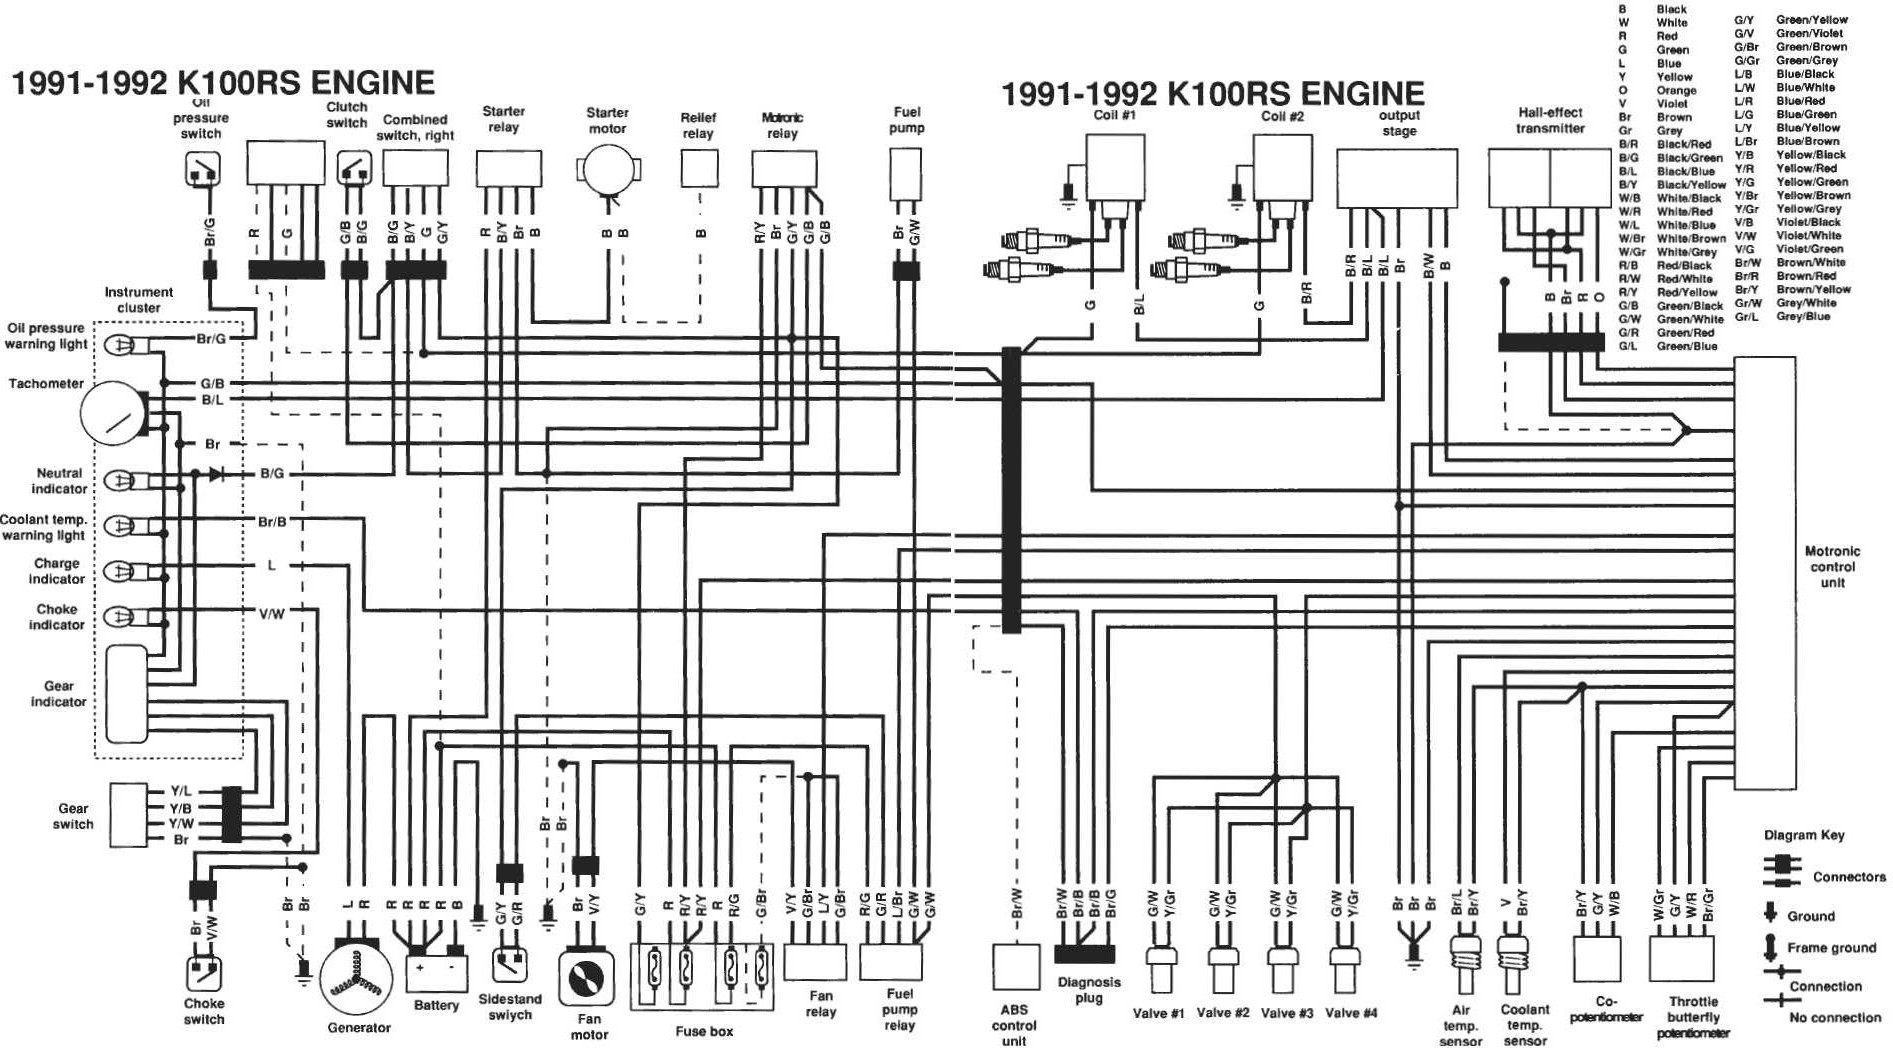 svi modeli wiring diagram bmw bjbikers forum. Black Bedroom Furniture Sets. Home Design Ideas